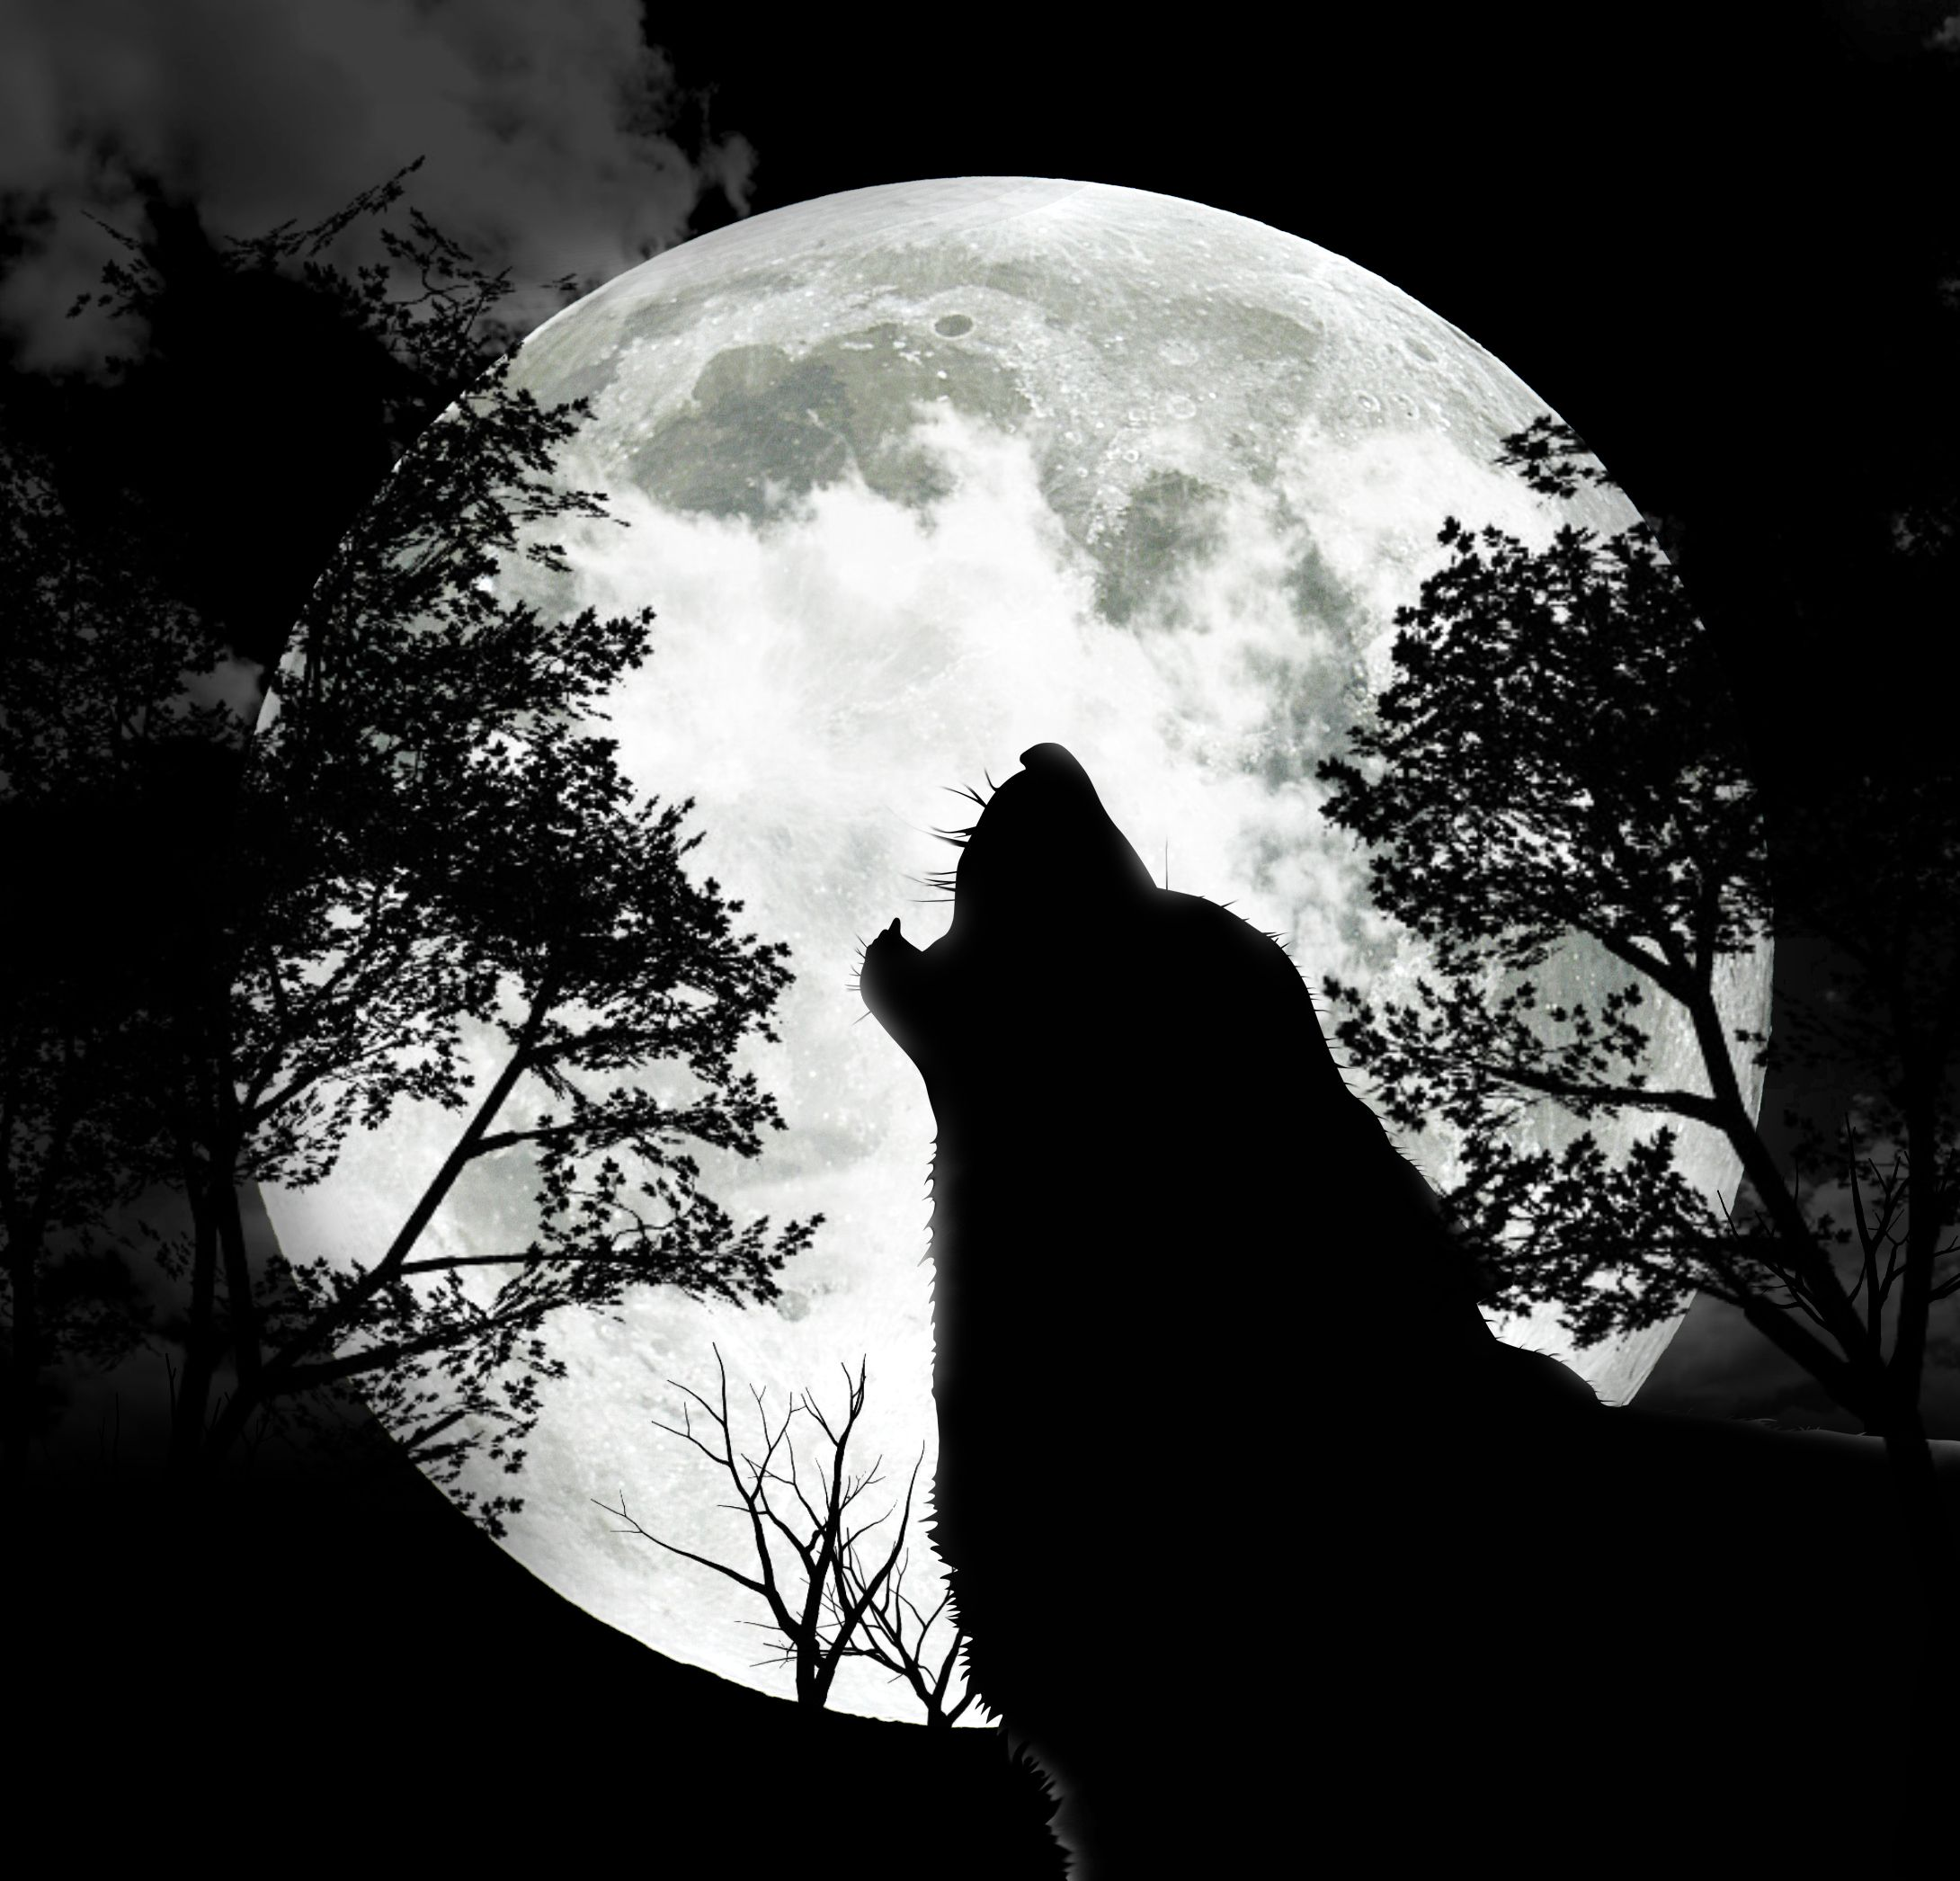 Iphone wallpaper tumblr wolf - The Full Wolf Moon 9th January 12